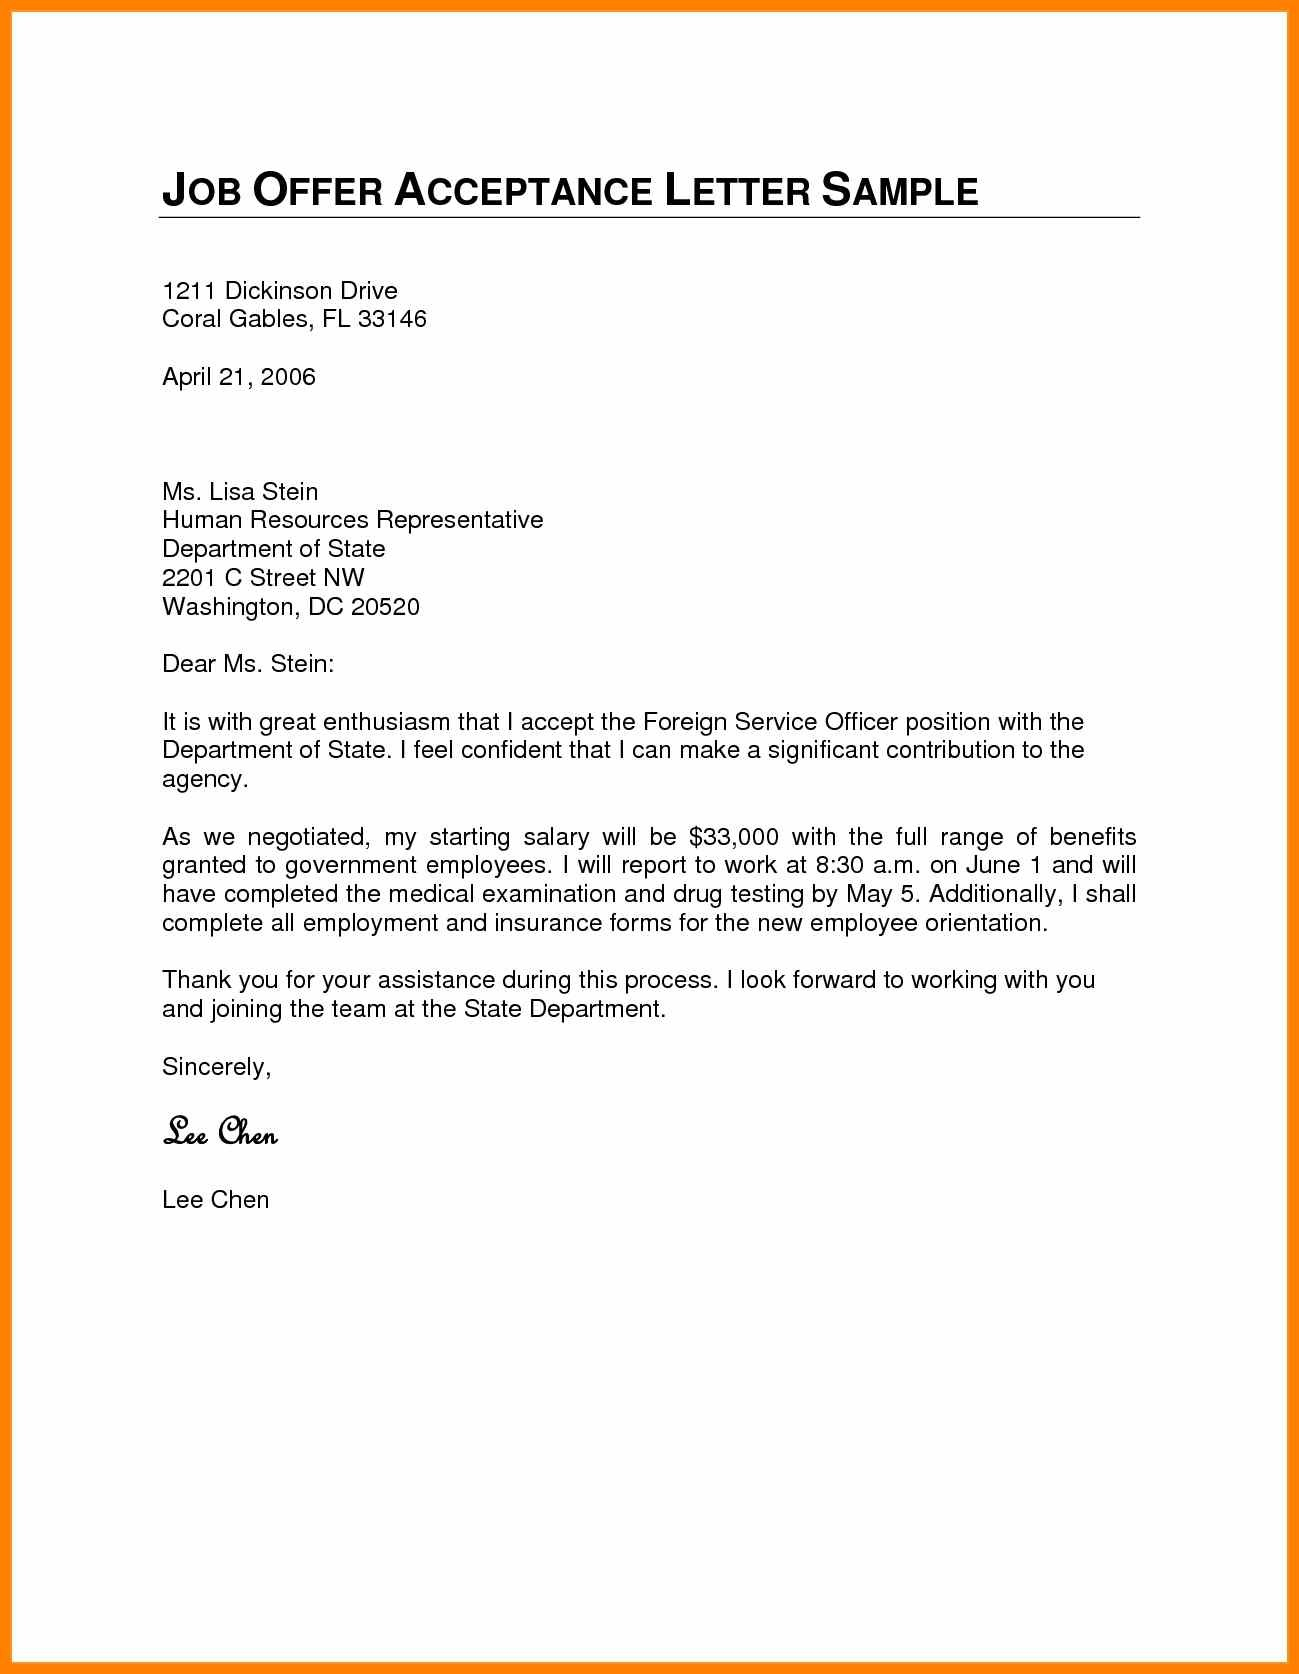 Job Offer Acceptance Letter Template - formal Acceptance Letter for Job Fer New 8 Acceptance Letter